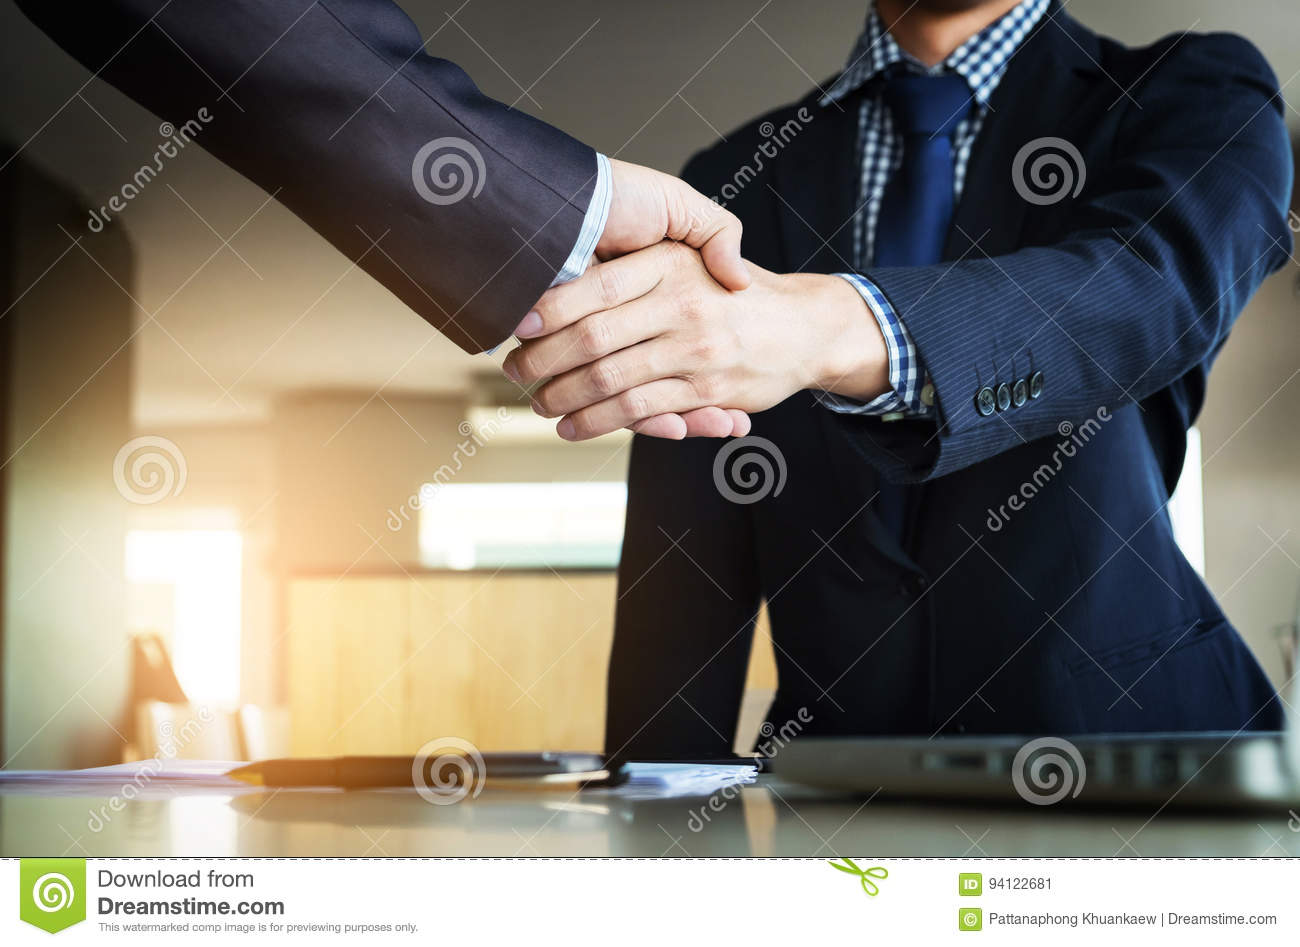 Business people handshake greeting deal at work photo free download - Business Partnership Meeting Concept Images Of Business People Stock Photo Image 94122681